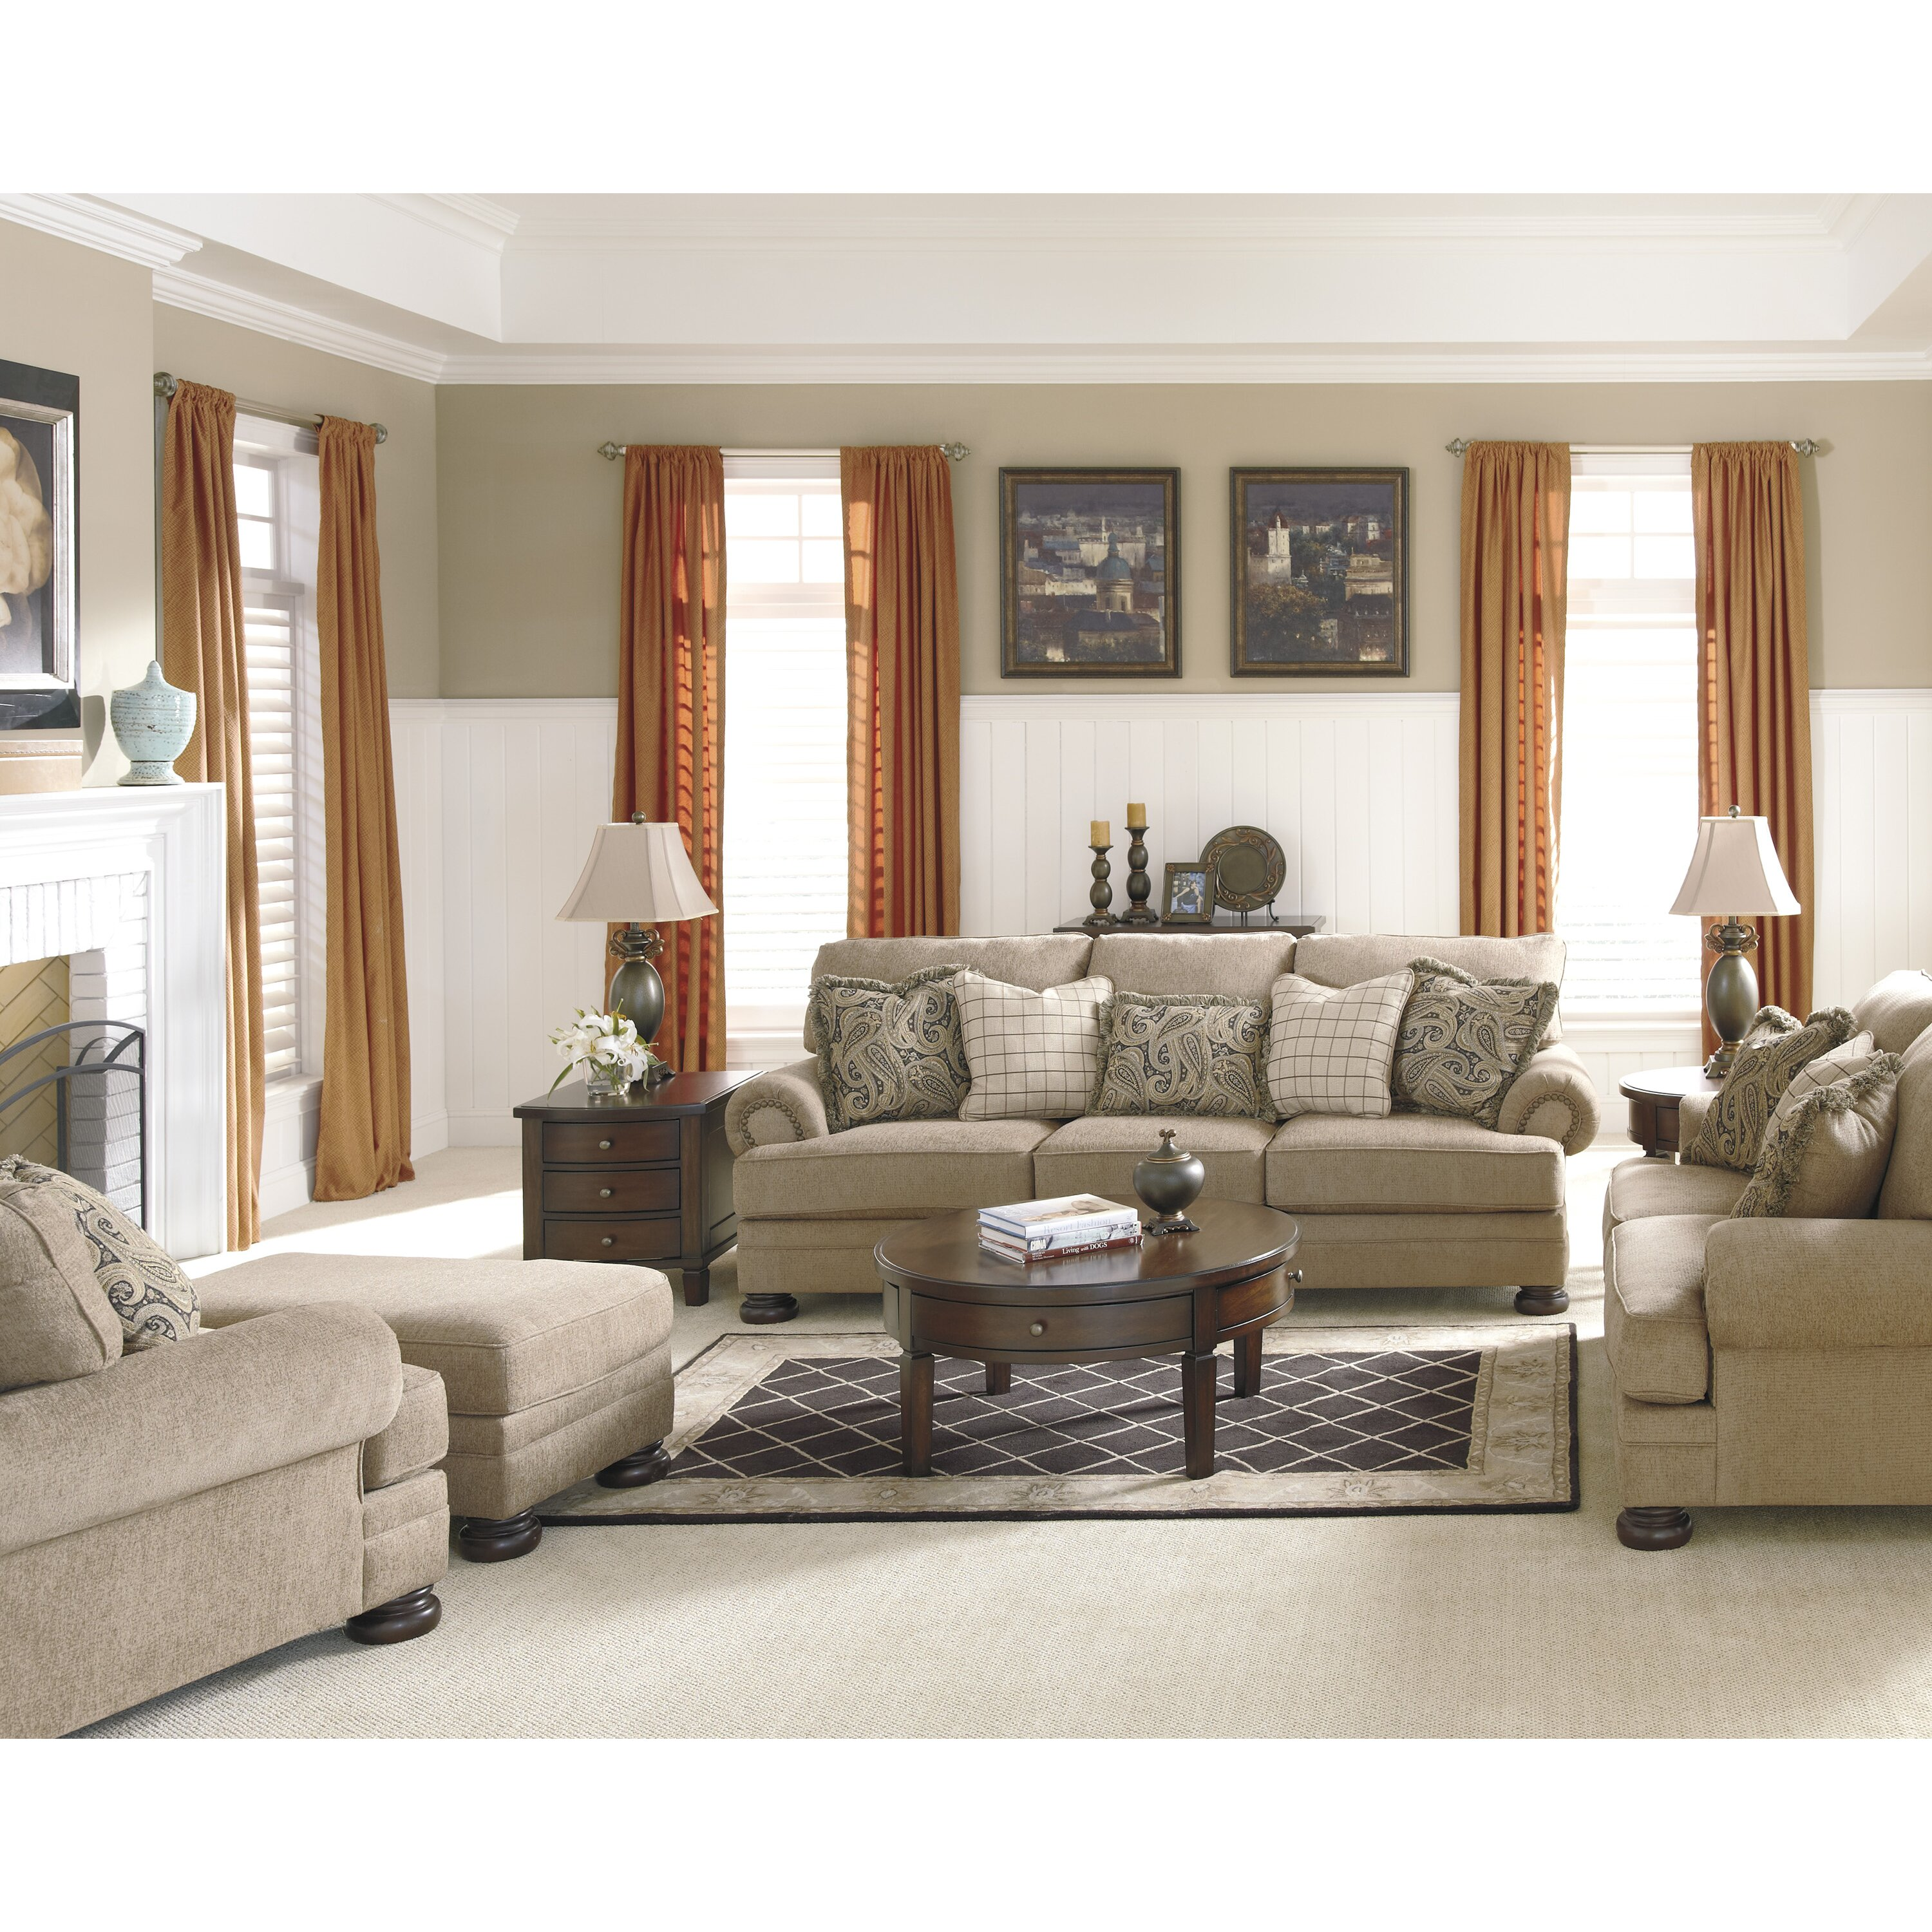 Signature Design By Ashley Dozier Living Room Collection Reviews Wayfair